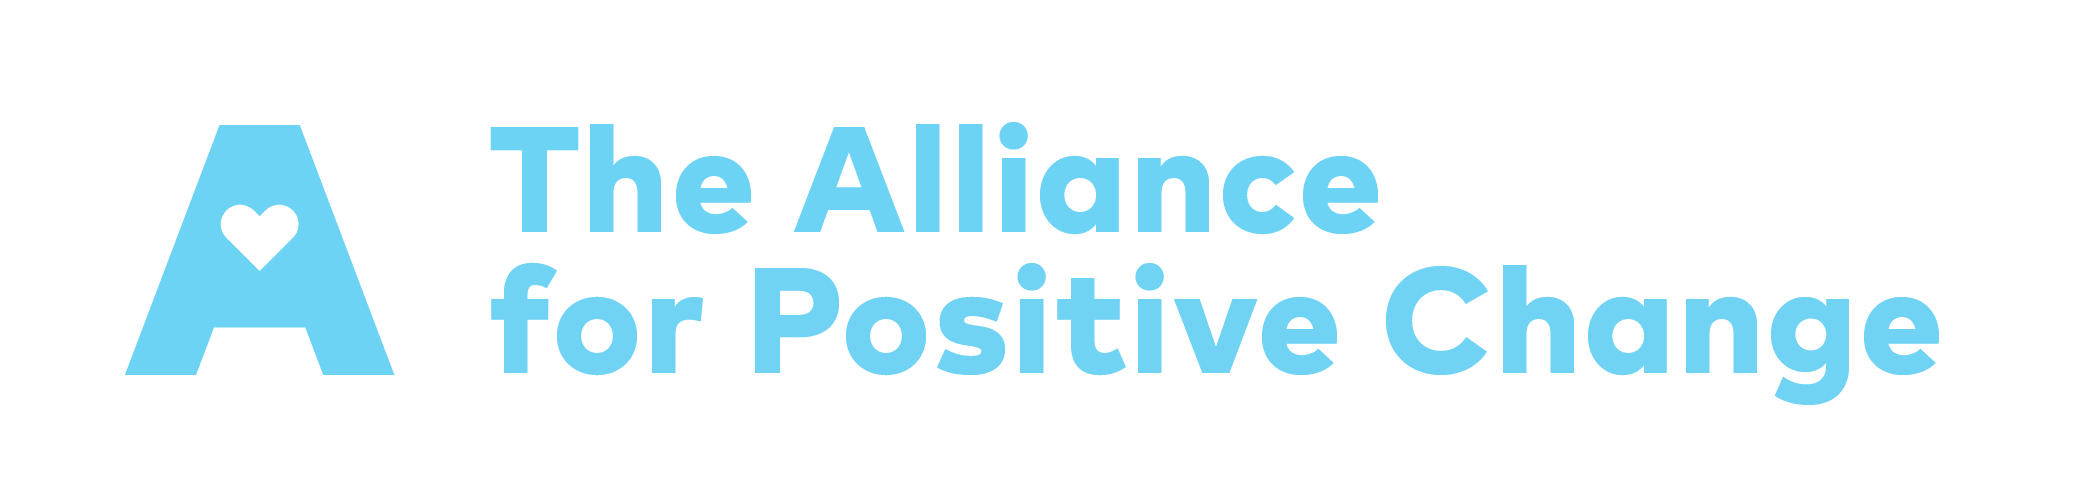 The Alliance for Positive Change